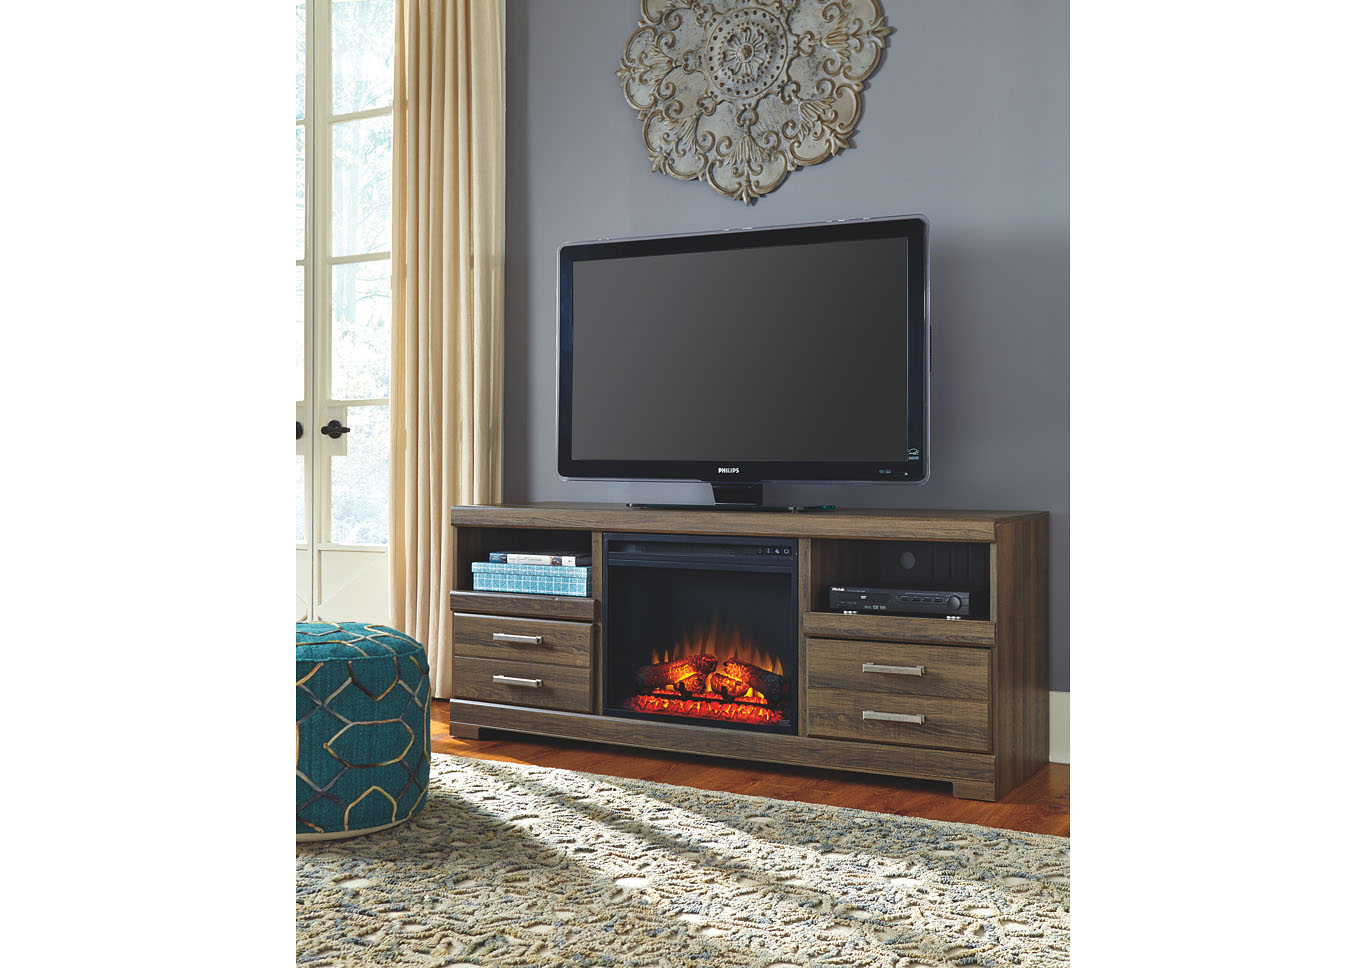 Frantin Large TV Stand w/ LED Fireplace Insert,Signature Design By Ashley